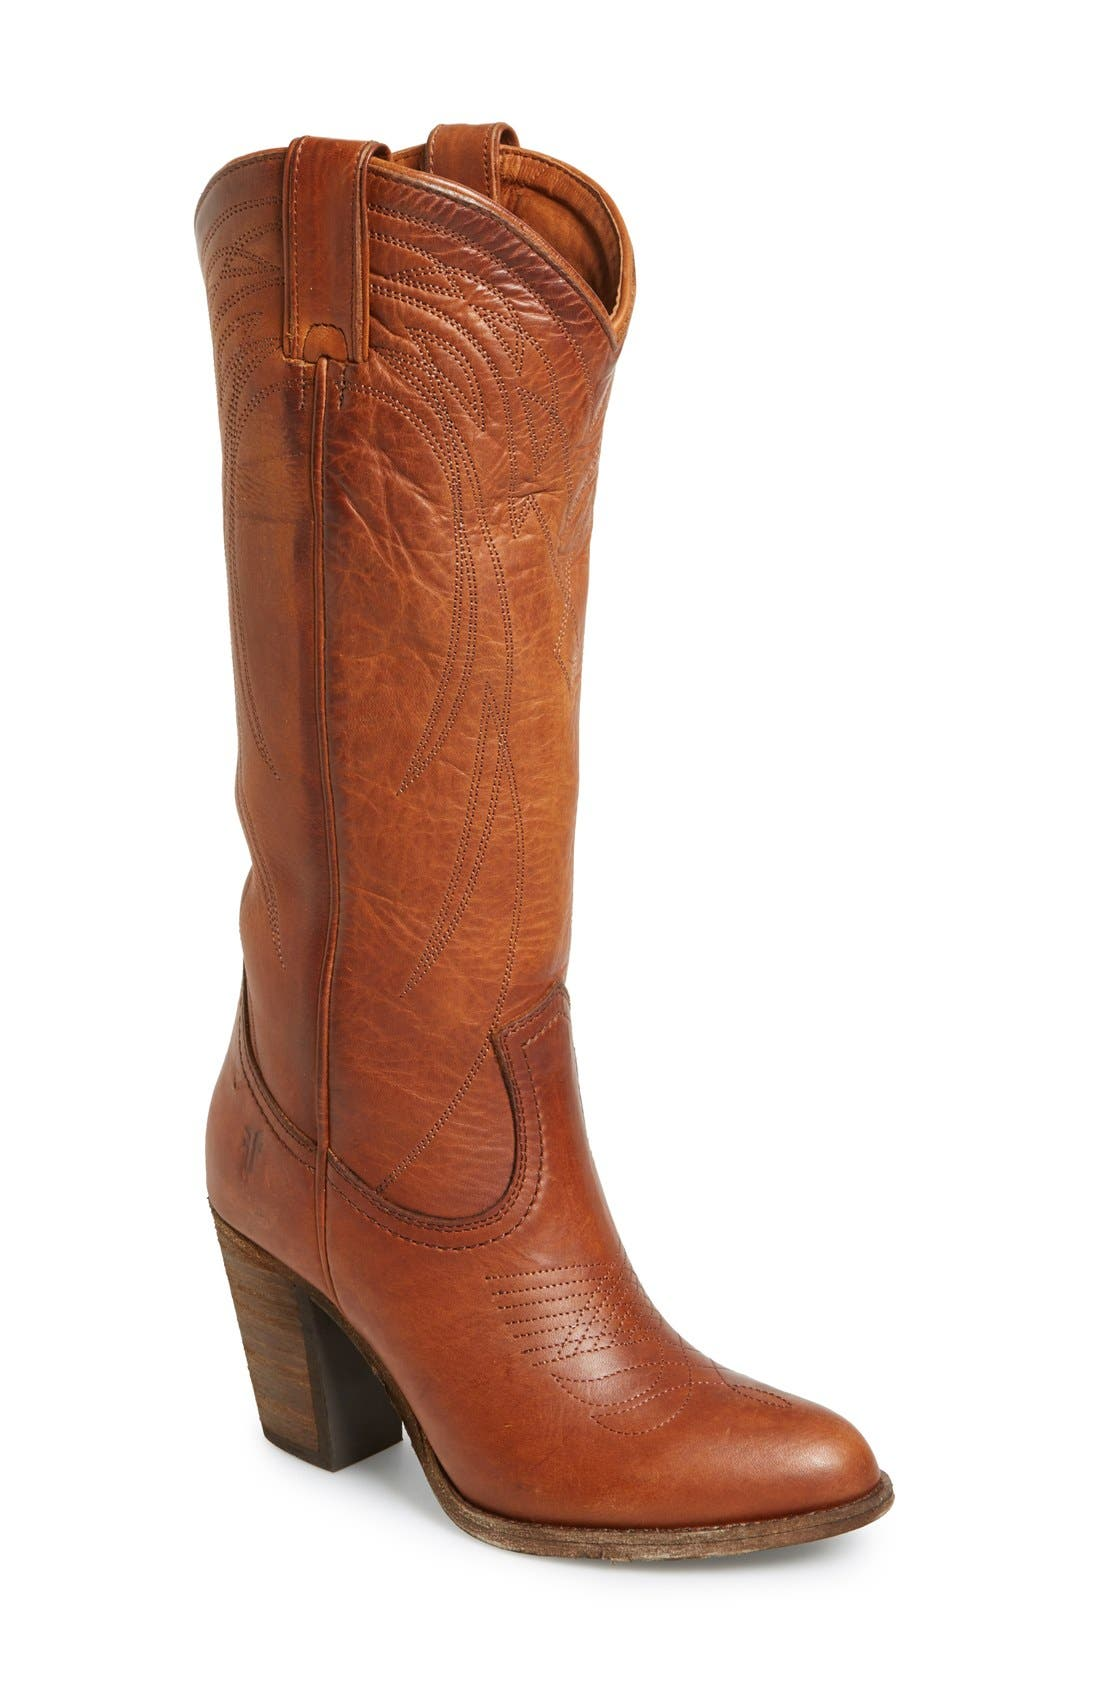 Main Image - Frye 'Ilana' Embroidered Leather Western Boot (Women)